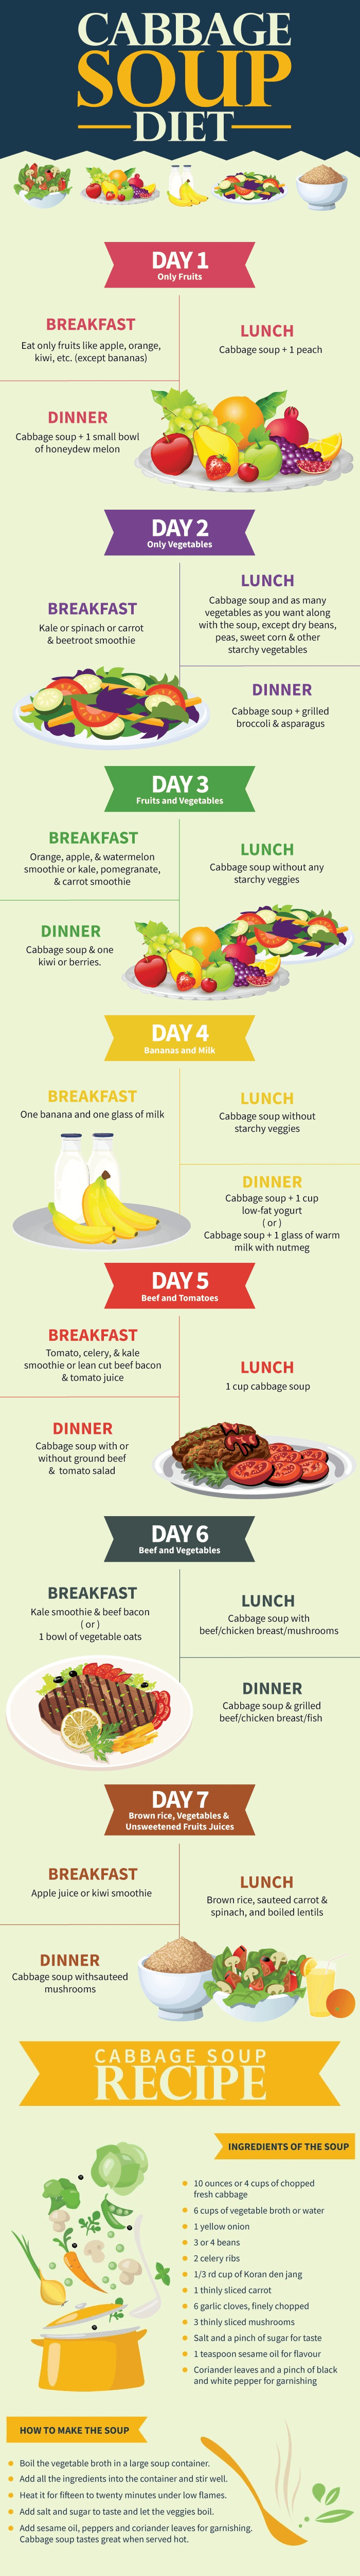 7-Day Cabbage Soup Diet For Rapid Weight Loss - Infographic